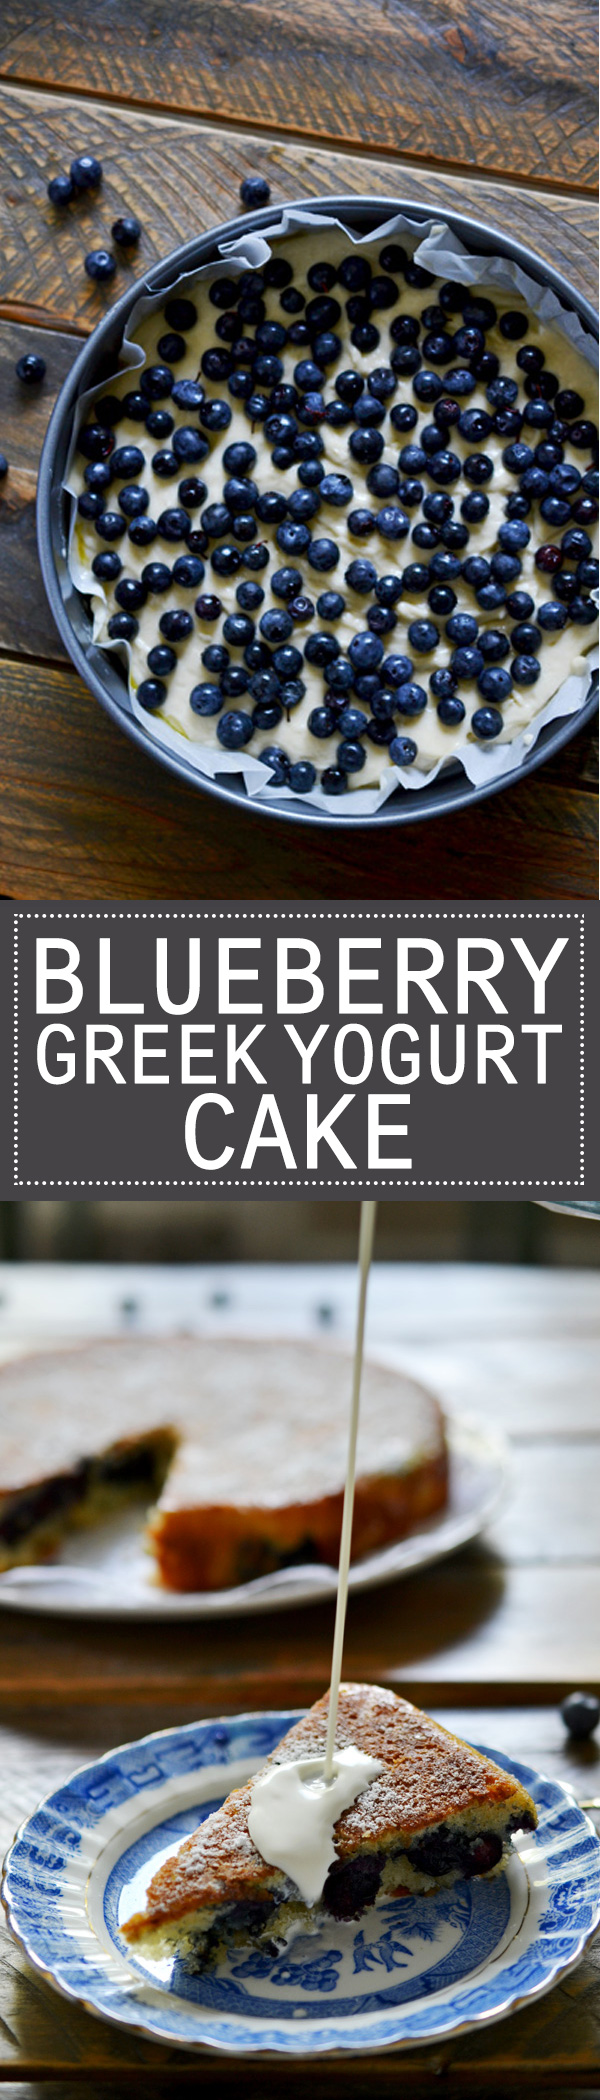 Blueberry Yogurt Cake Chocolate And Zucchini